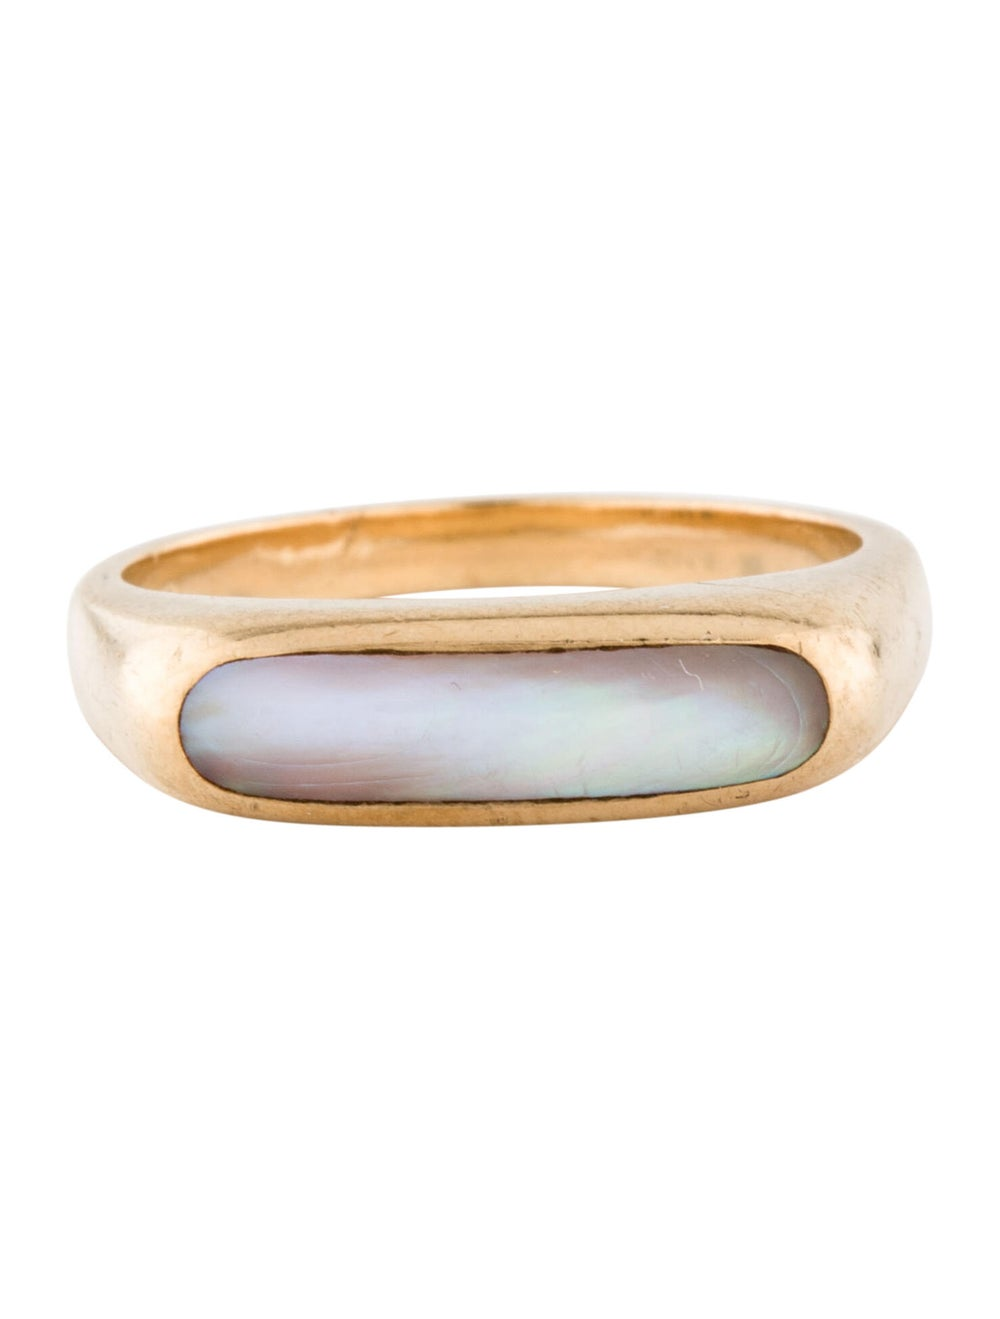 Ring 14K Mother Of Pearl Cocktail Ring yellow - image 3